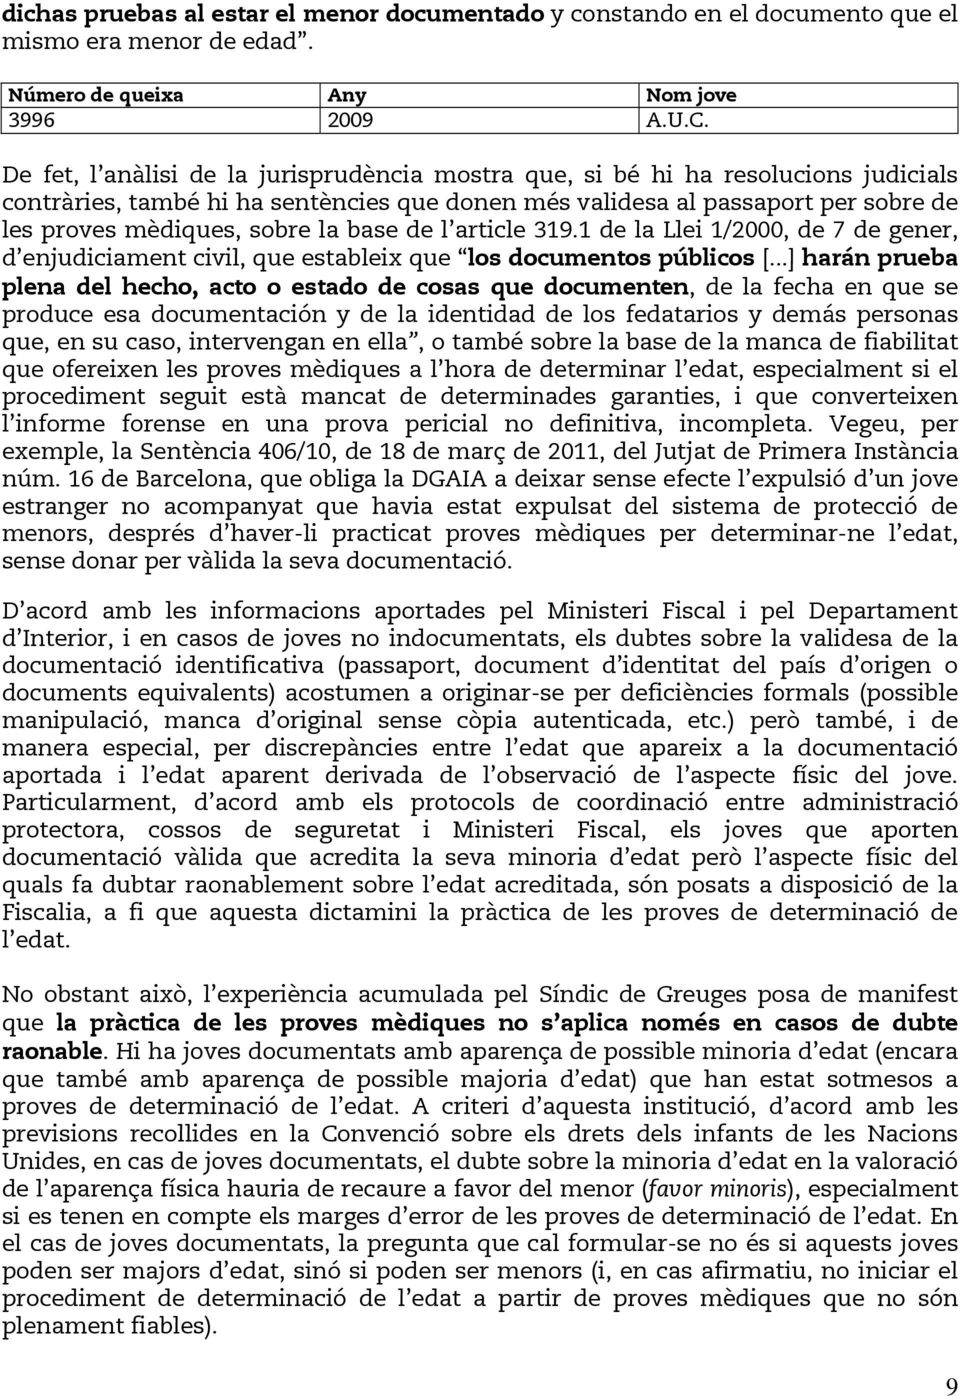 base de l article 319.1 de la Llei 1/2000, de 7 de gener, d enjudiciament civil, que estableix que los documentos públicos [.